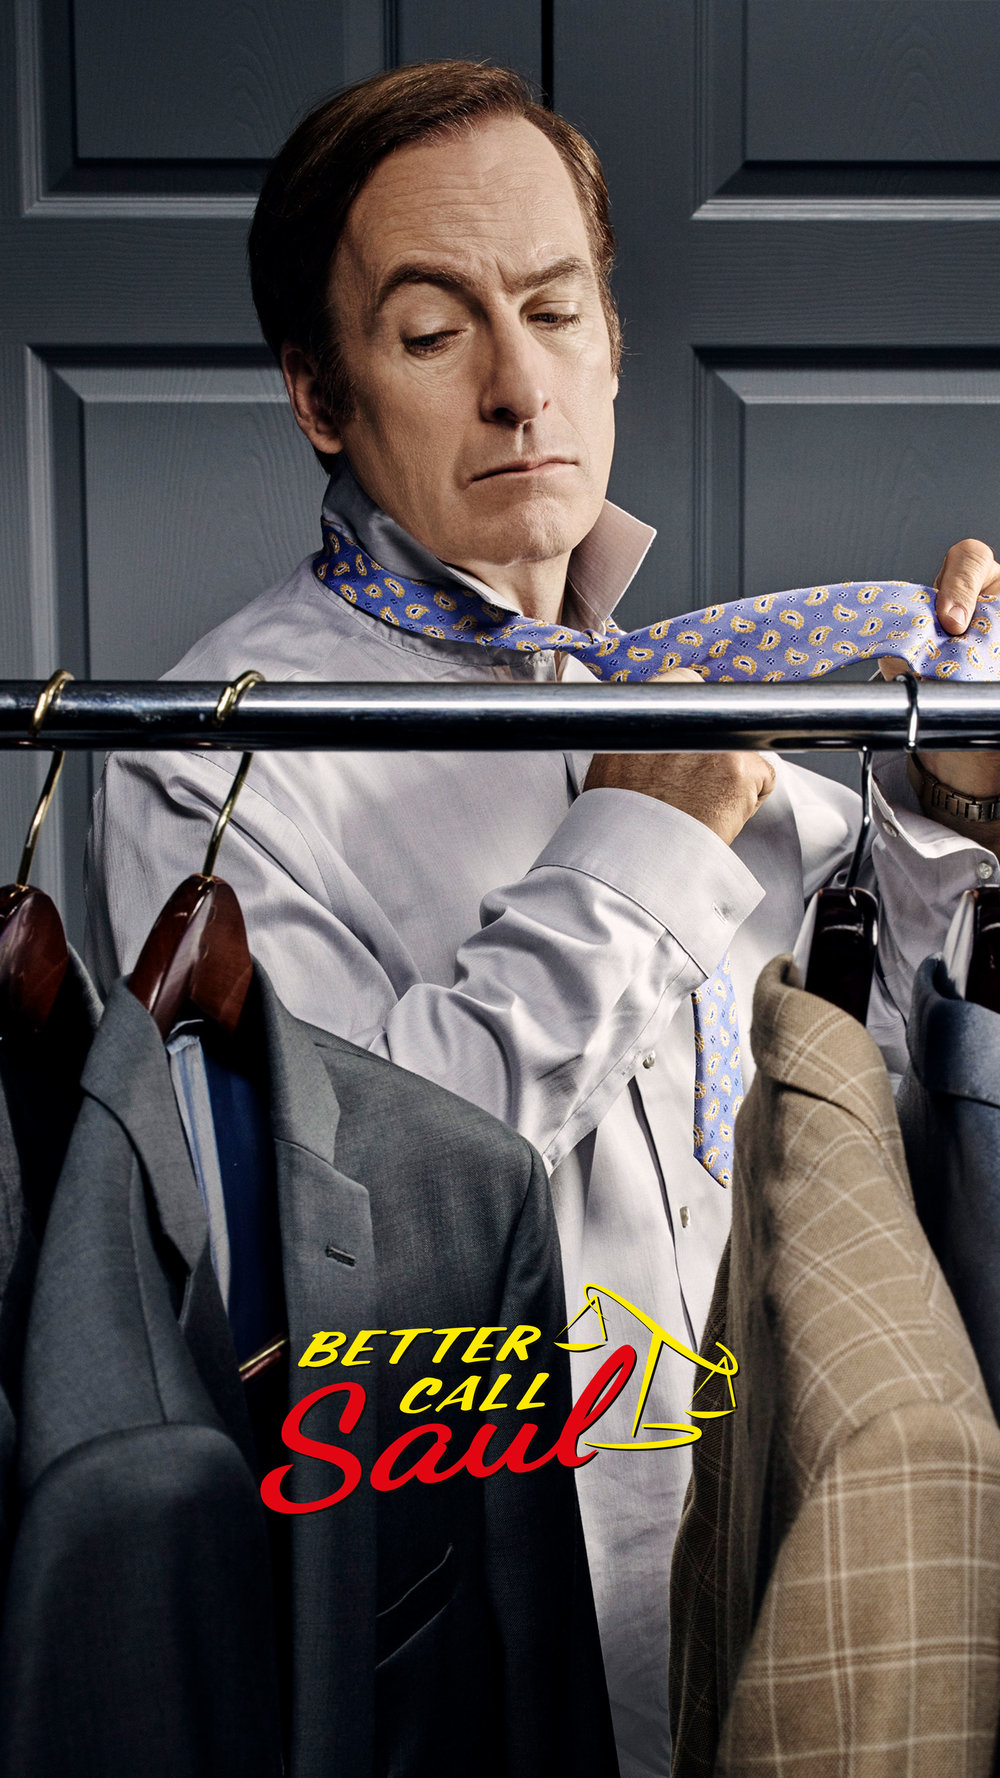 BetterCallSaul_Zedge_2250x4000_3.jpg